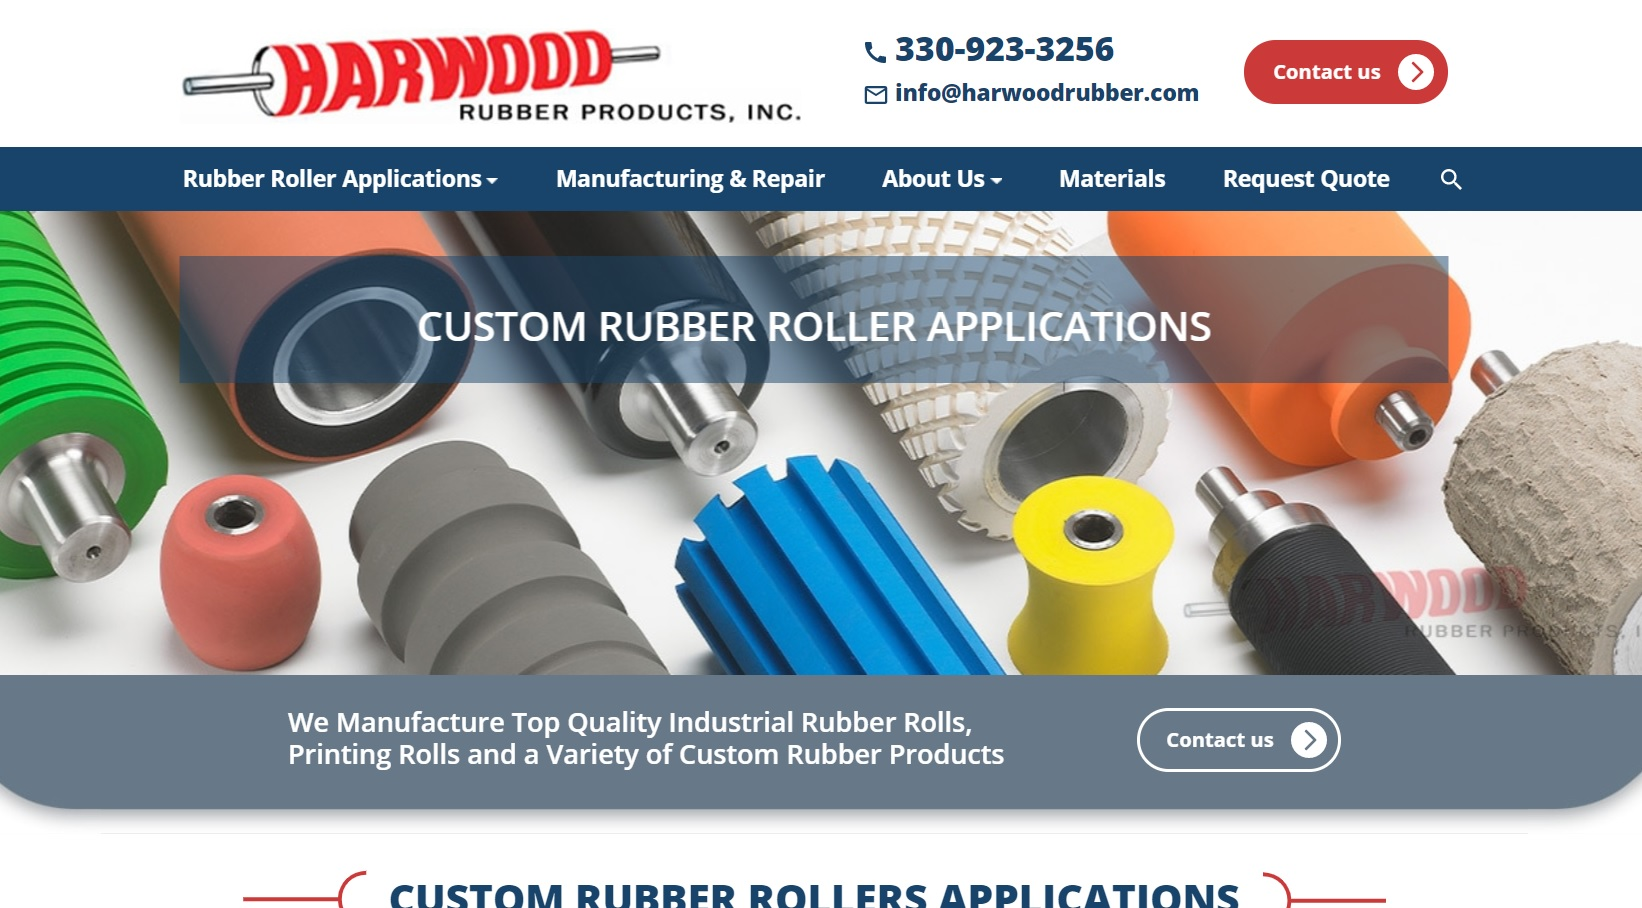 Harwood Rubber Products, Inc.